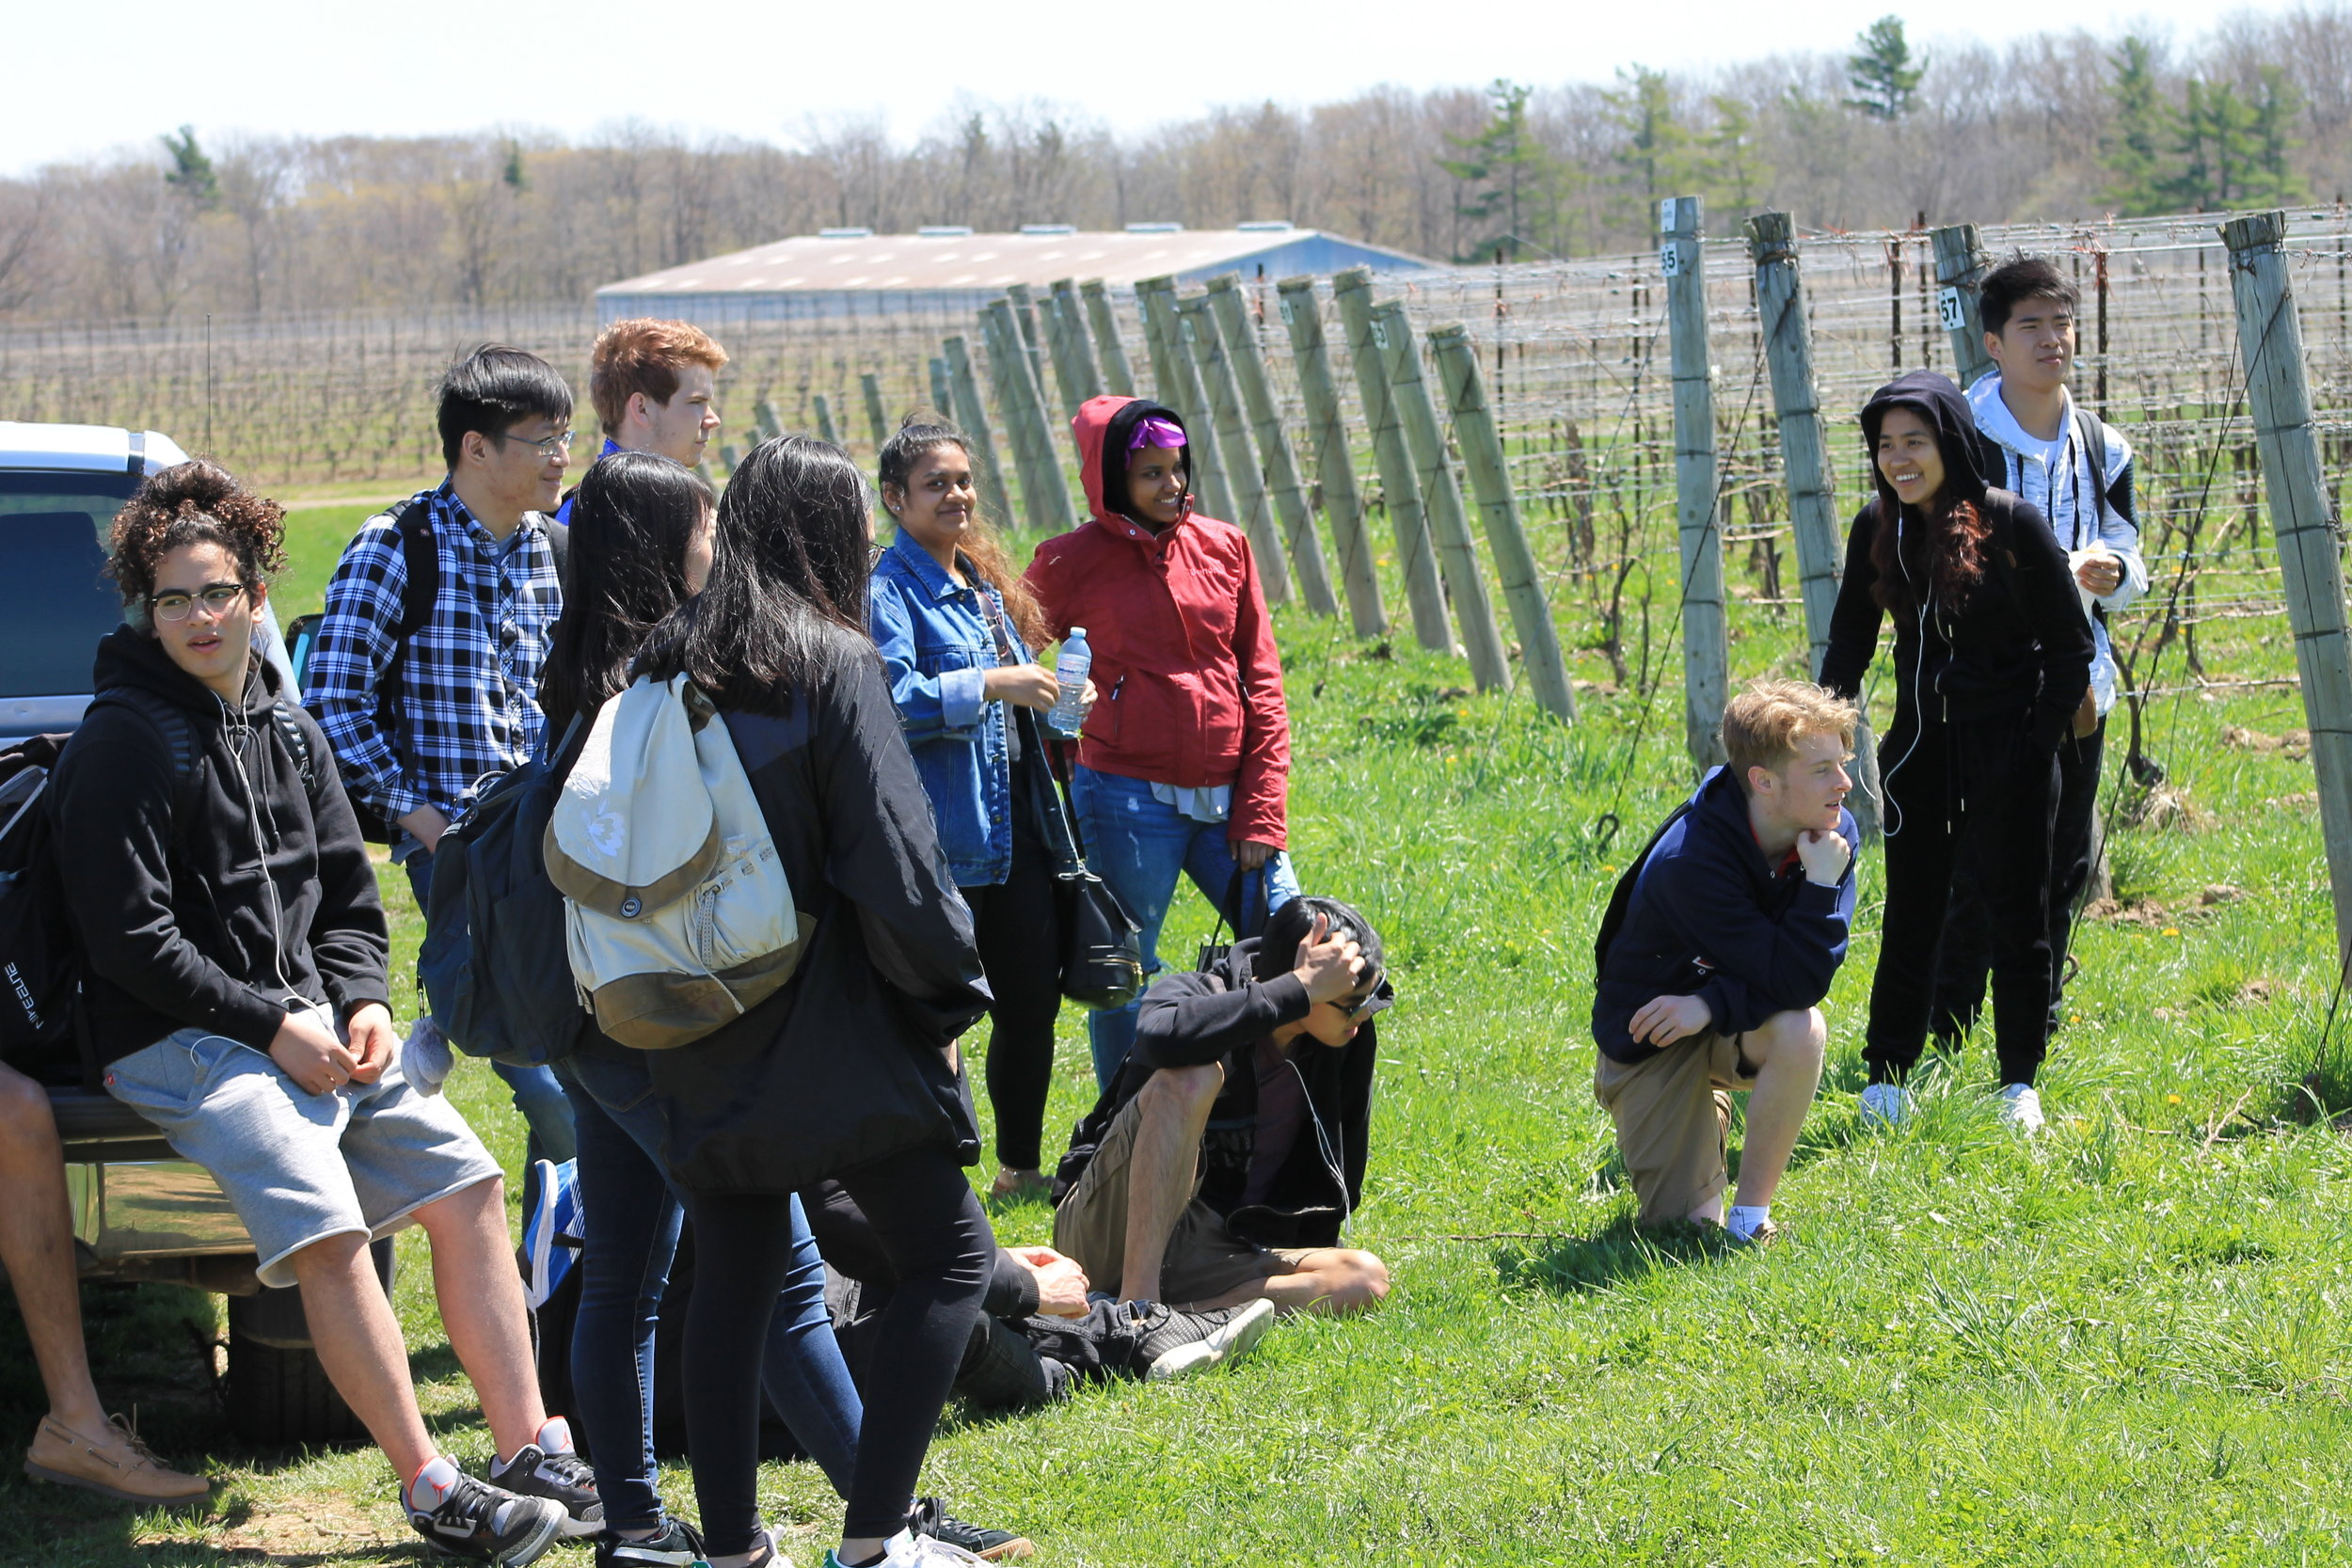 Students on a class trip to Tawse Winery, where they learn about viticulture (the practice and study of grape cultivation).